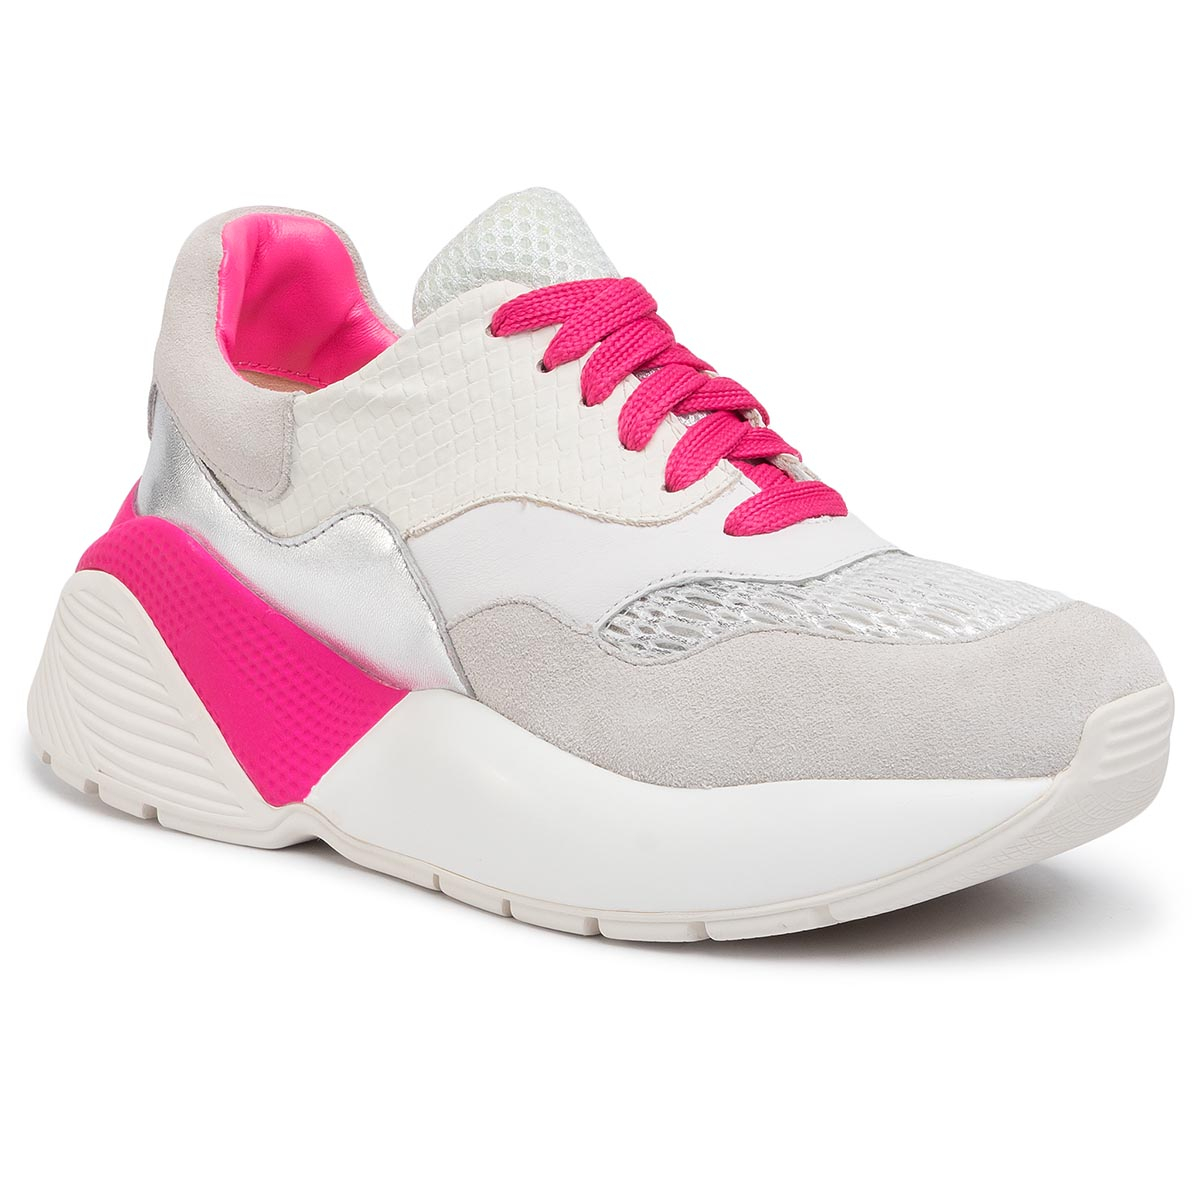 Sneakers TWINSET - Running 201TCP150 Bic.Ottico/Fuxia Fluo 04831